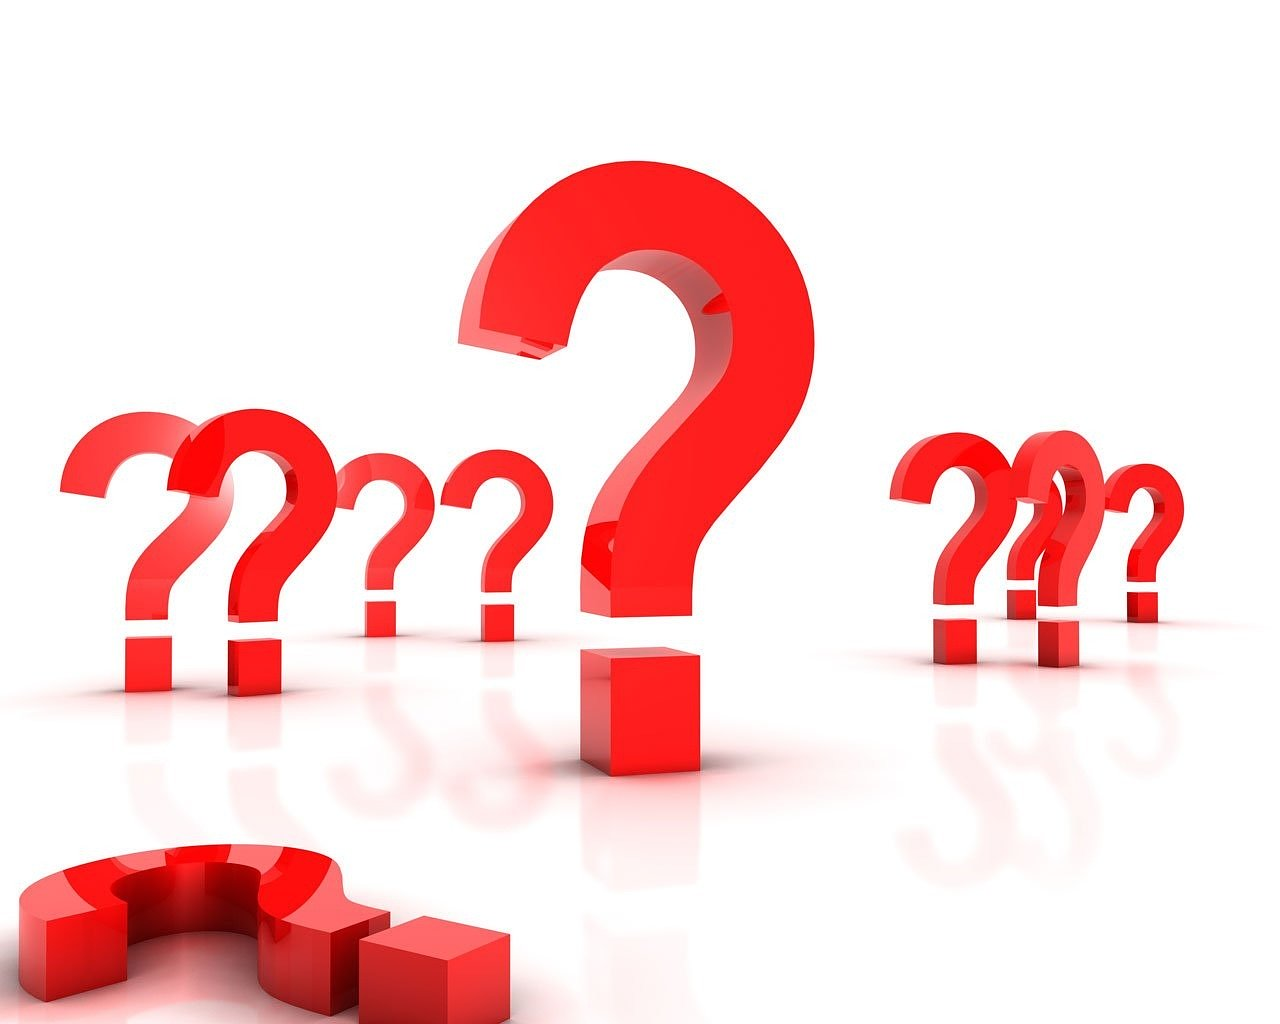 question marks, punctuation, symbol